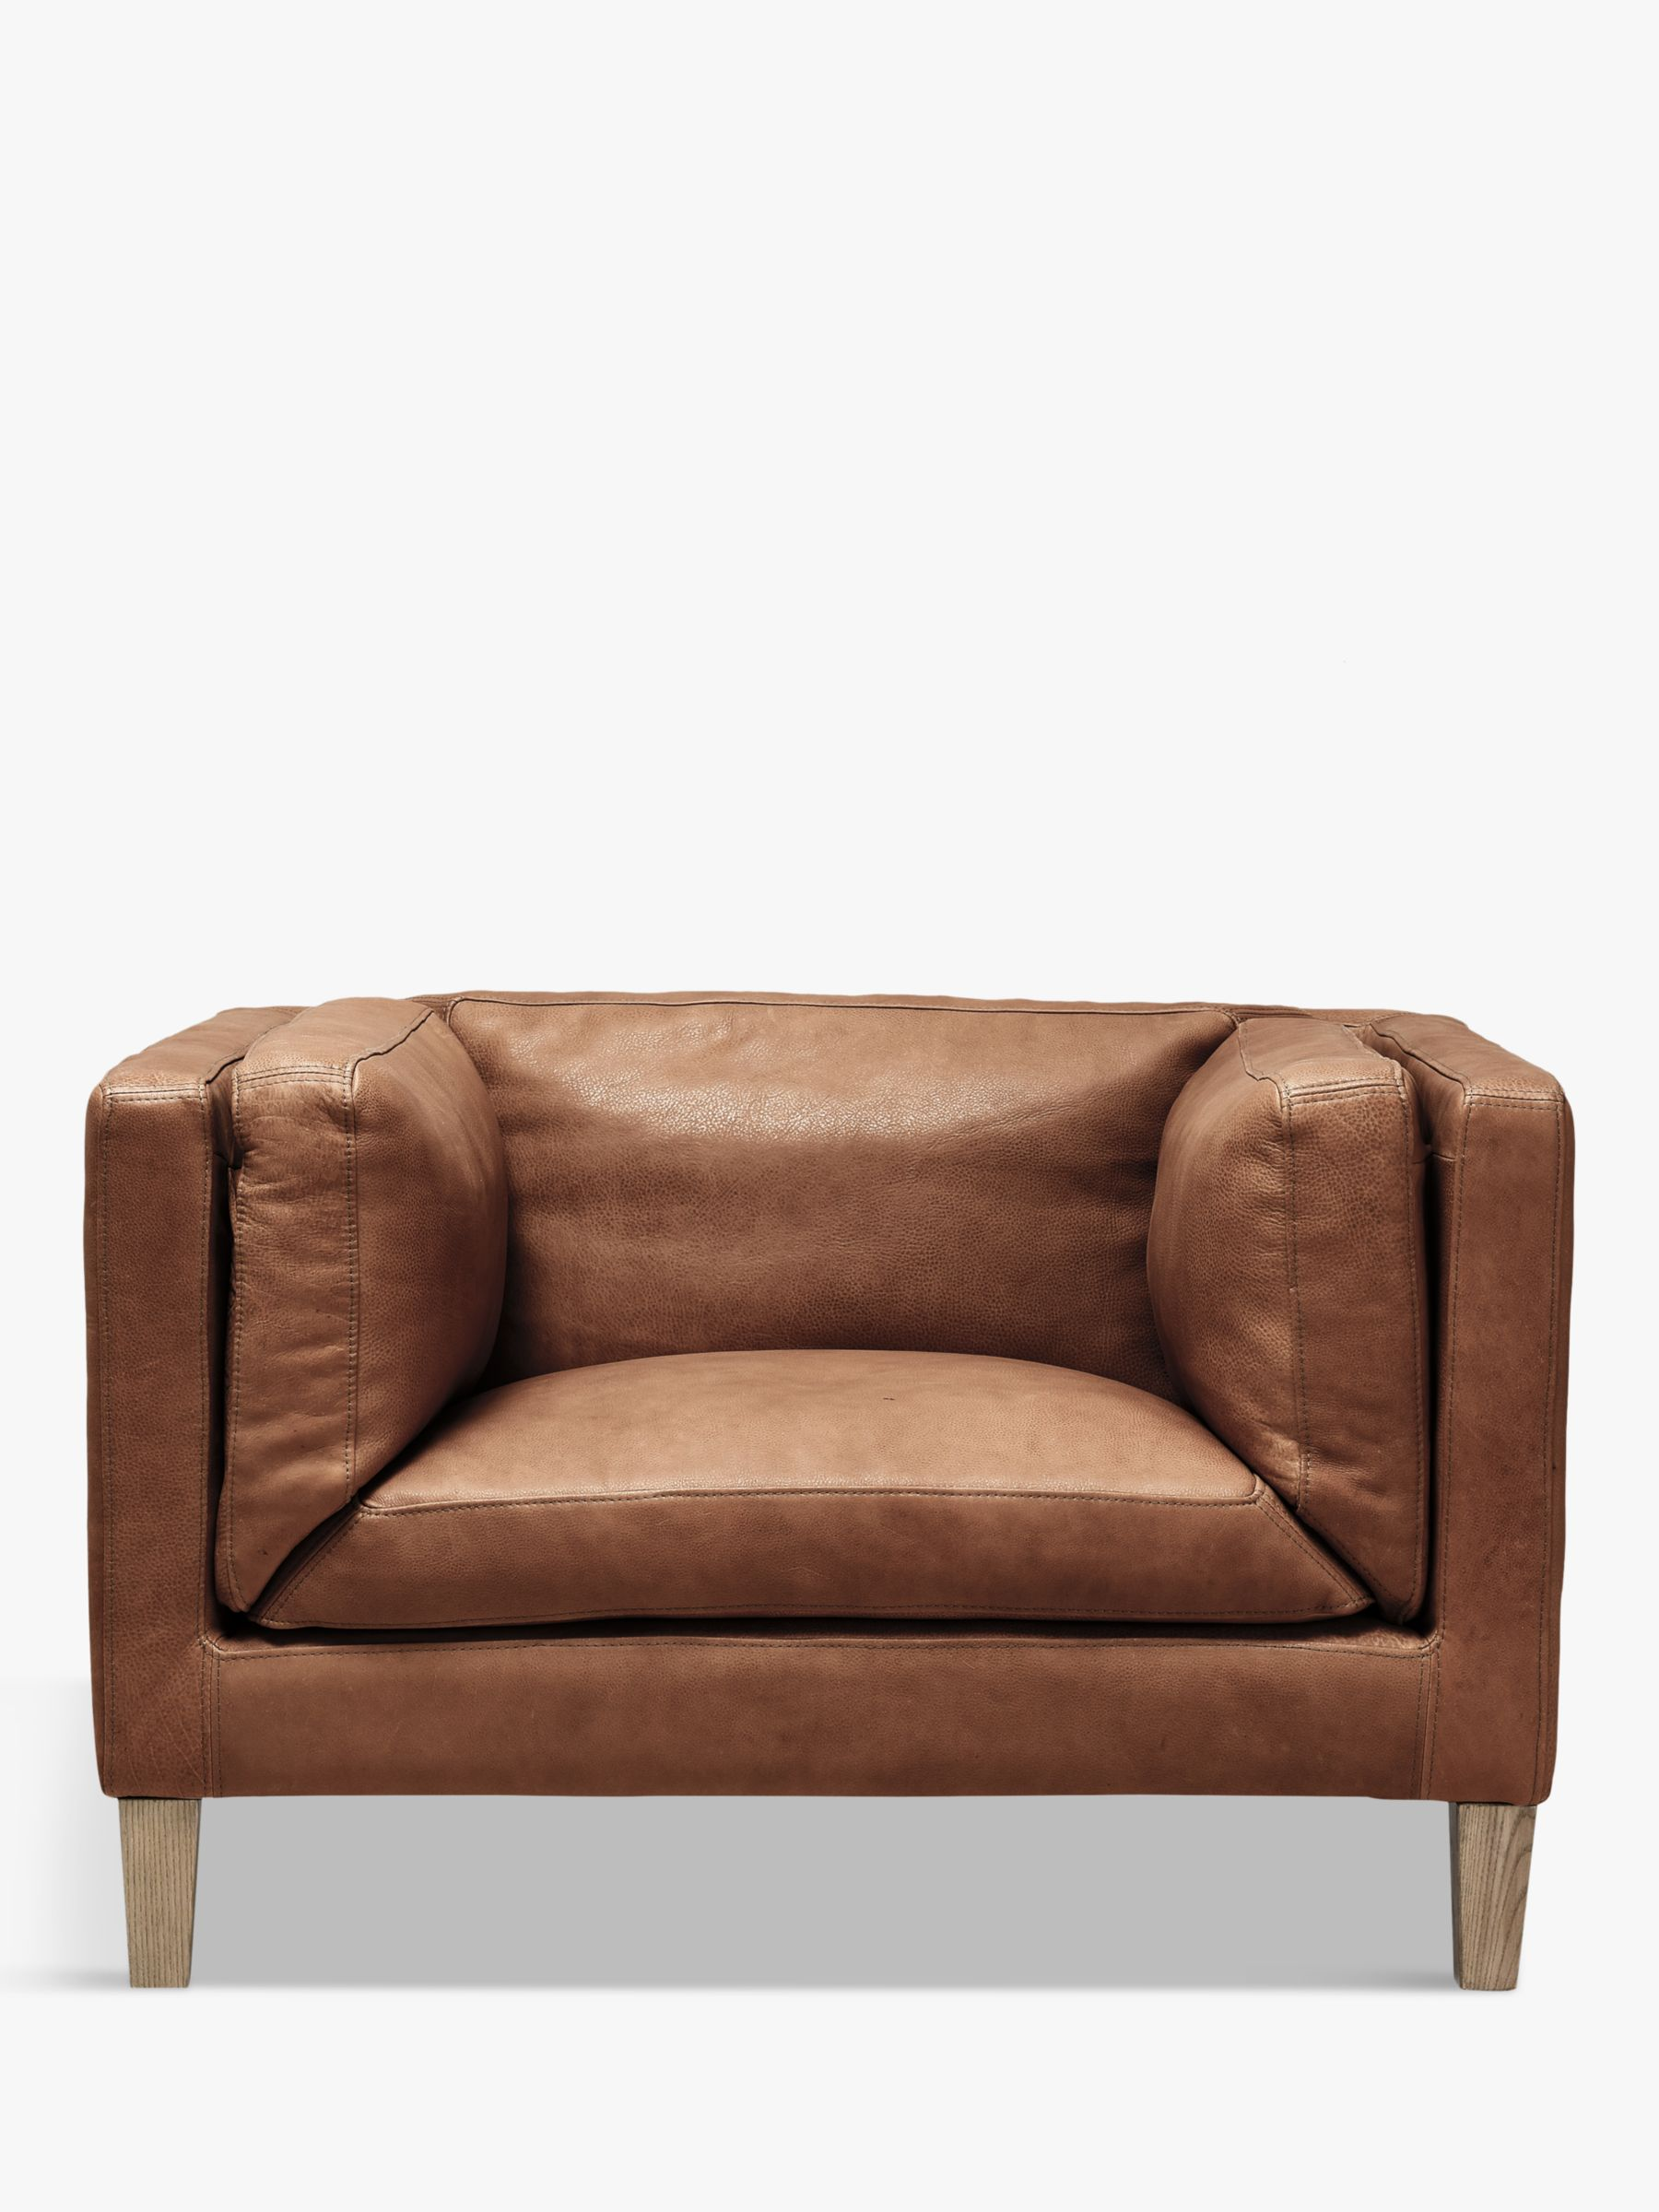 Halo Halo Spencer Leather Armchair, Natural Washed Camel